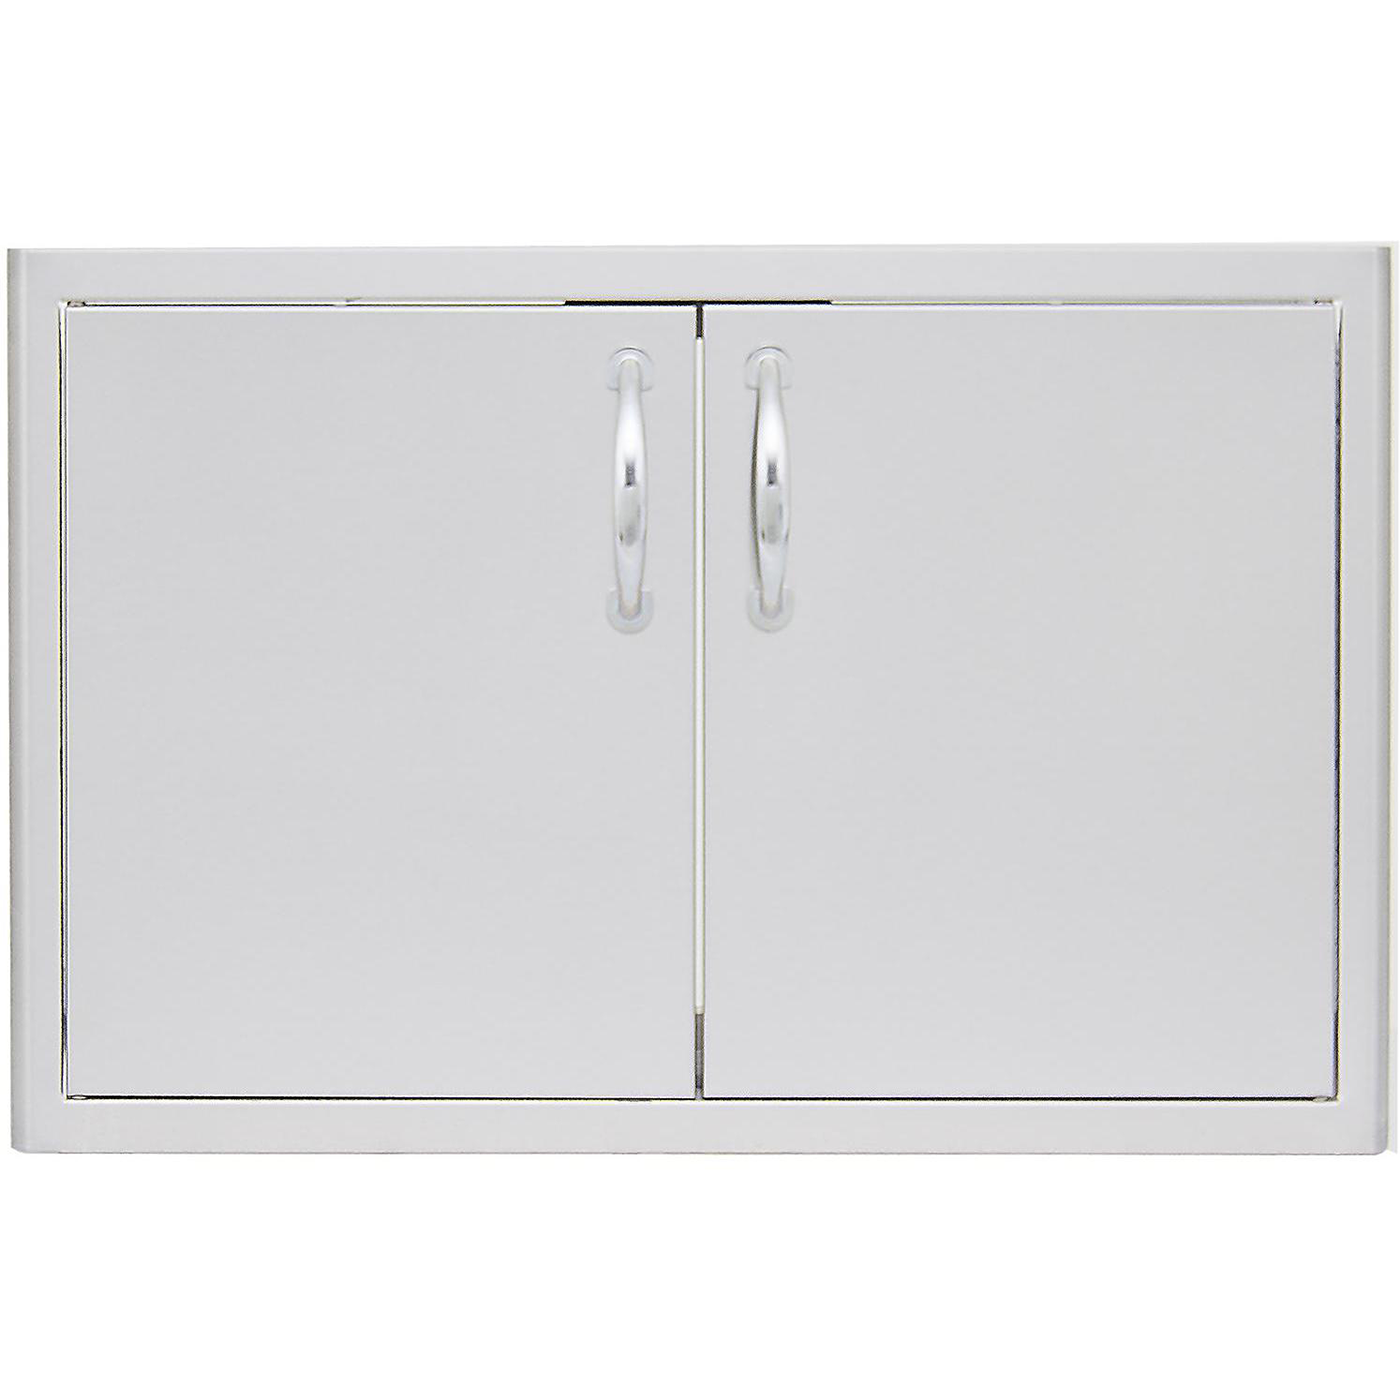 "Blaze 40"" Double Access Door"